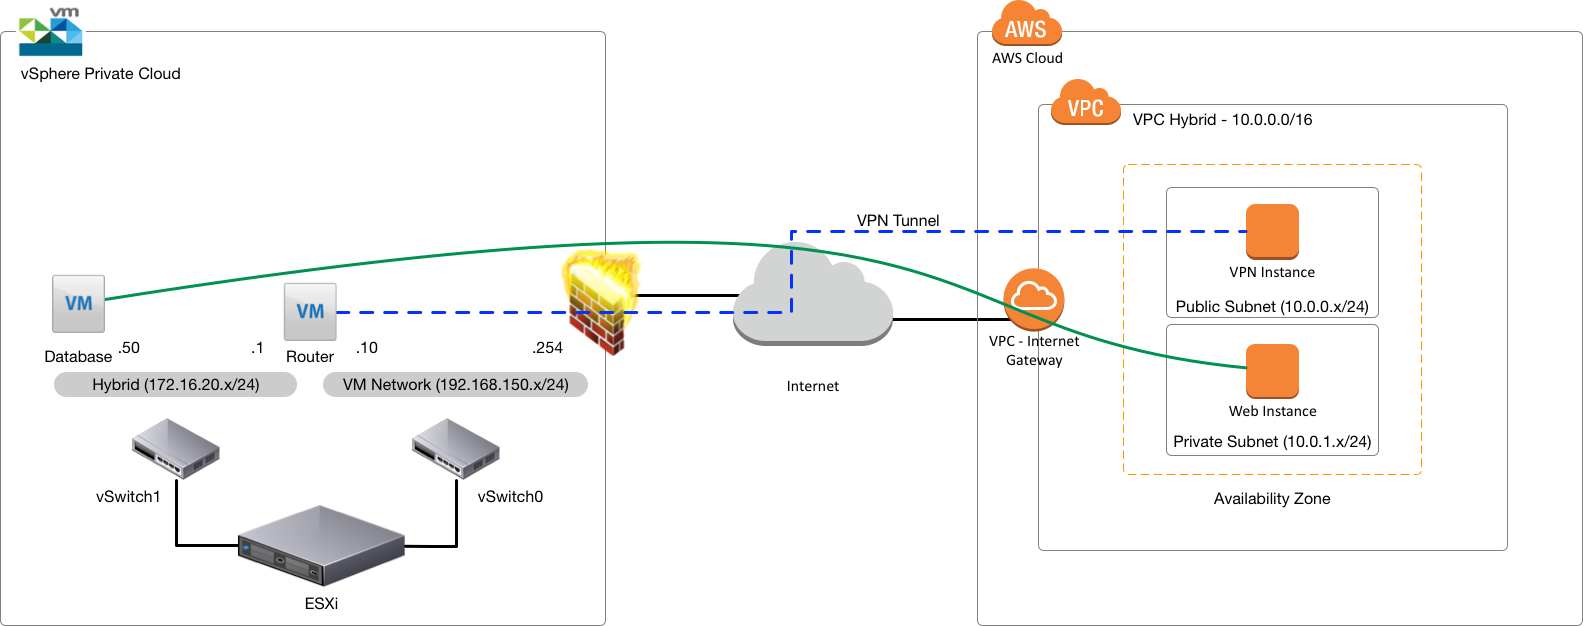 Building A Dynamic vSphere/AWS Hybrid Cloud Lab - Part 1